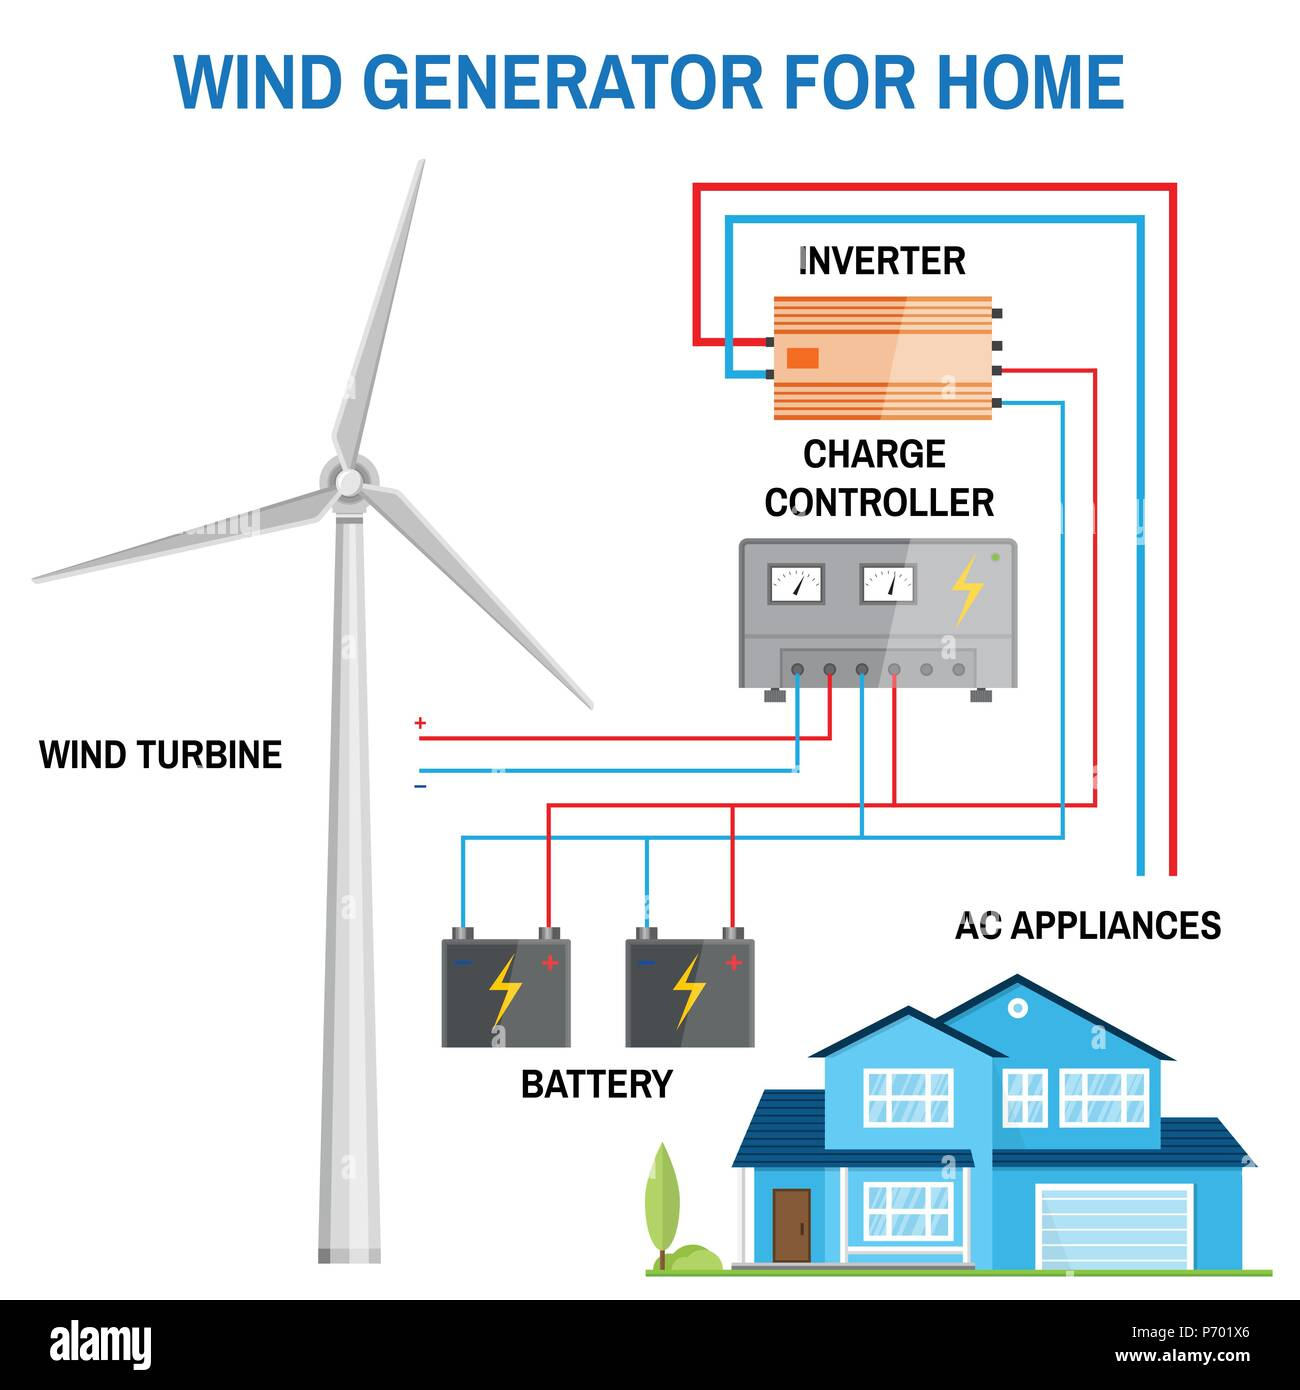 hight resolution of wind generator for home renewable energy concept simplified diagram of an off grid